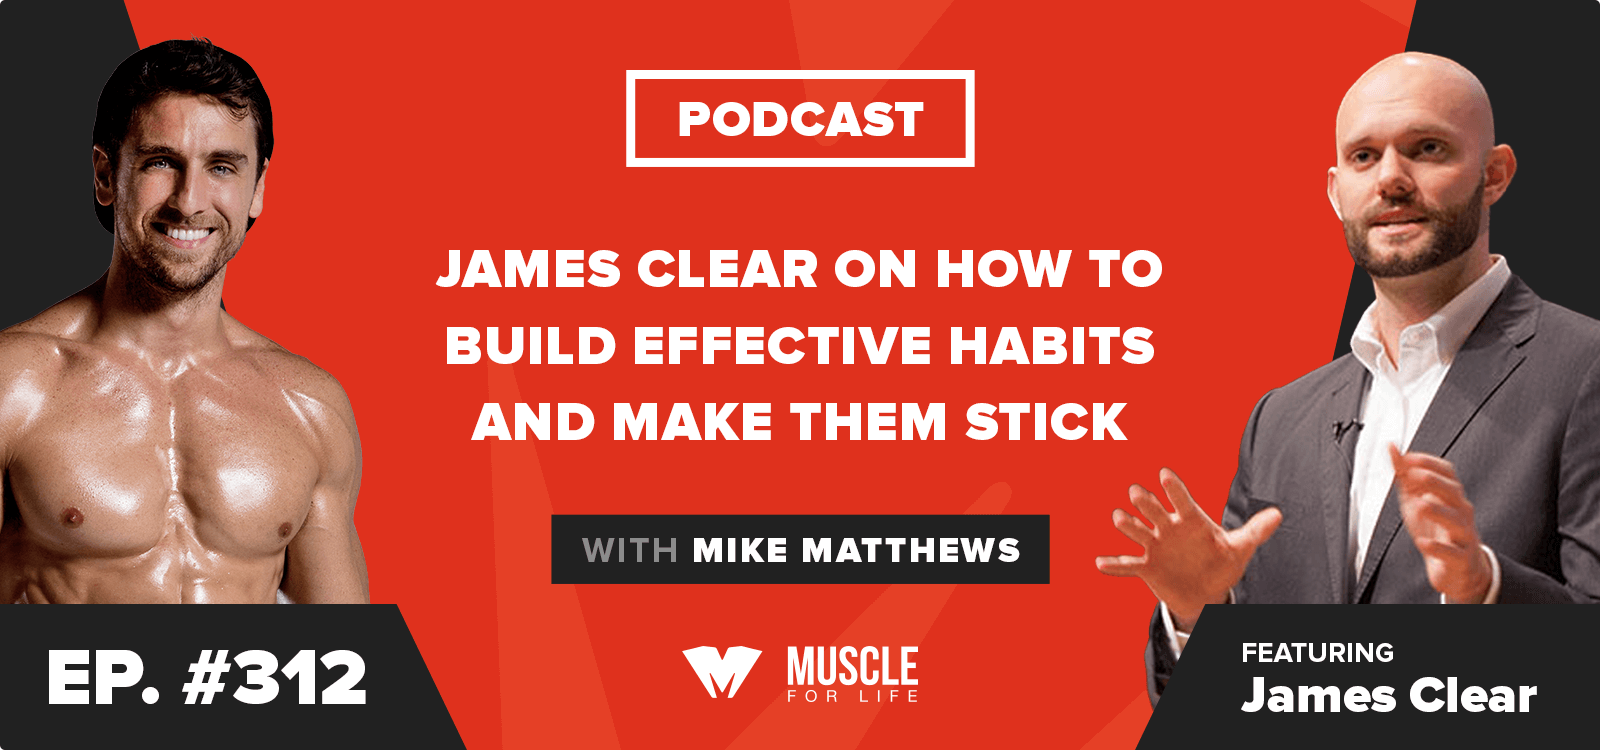 James Clear on How to Build Effective Habits and Make Them Stick